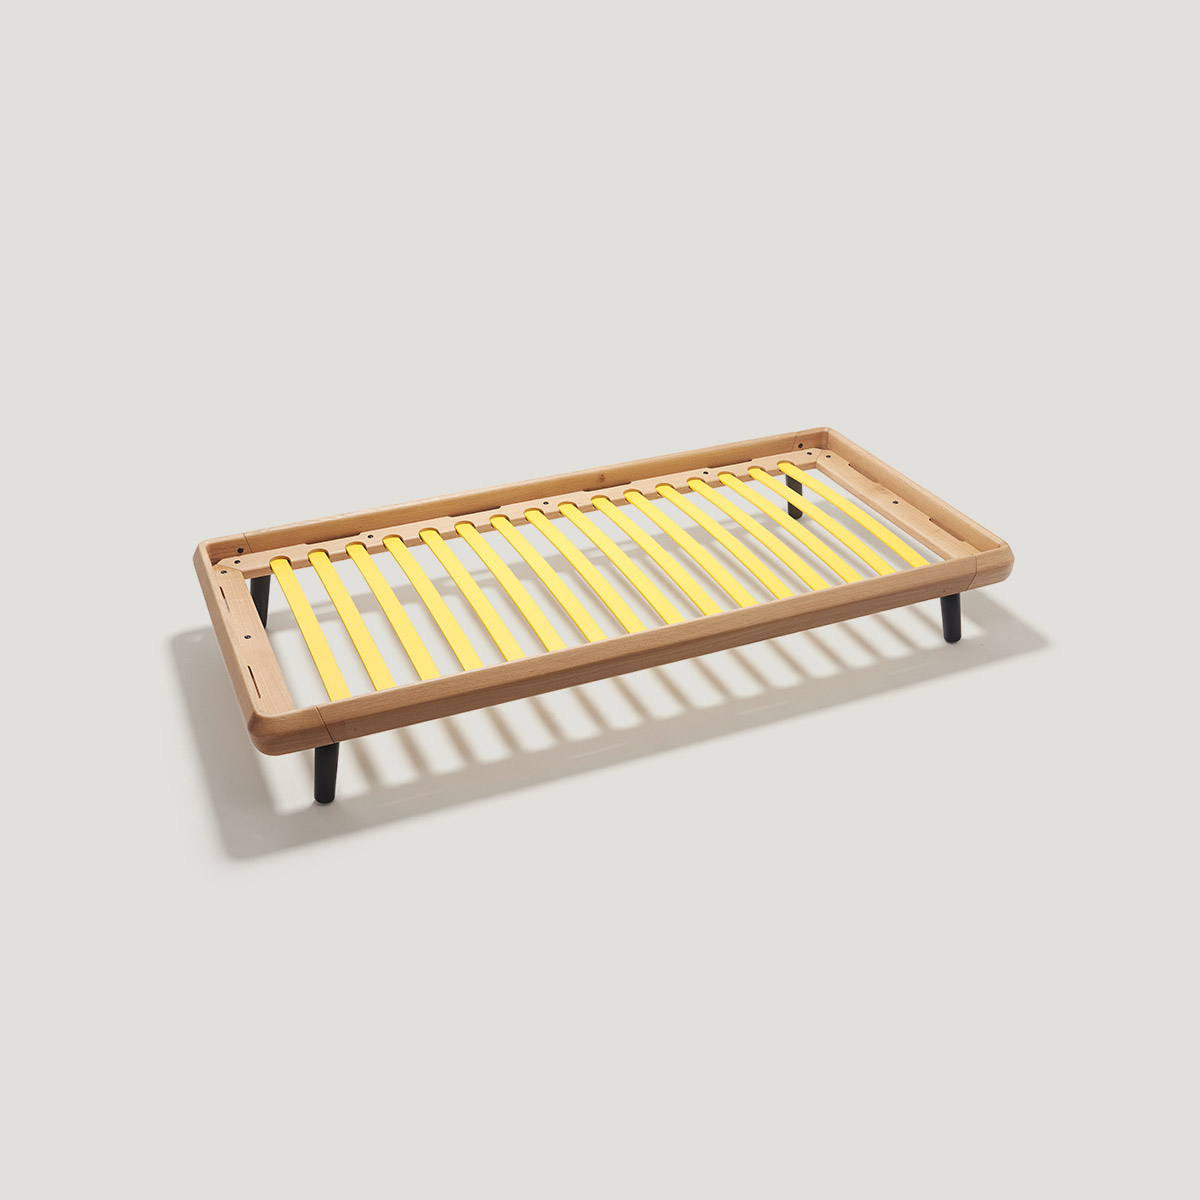 VII frame daybed made of solid oak